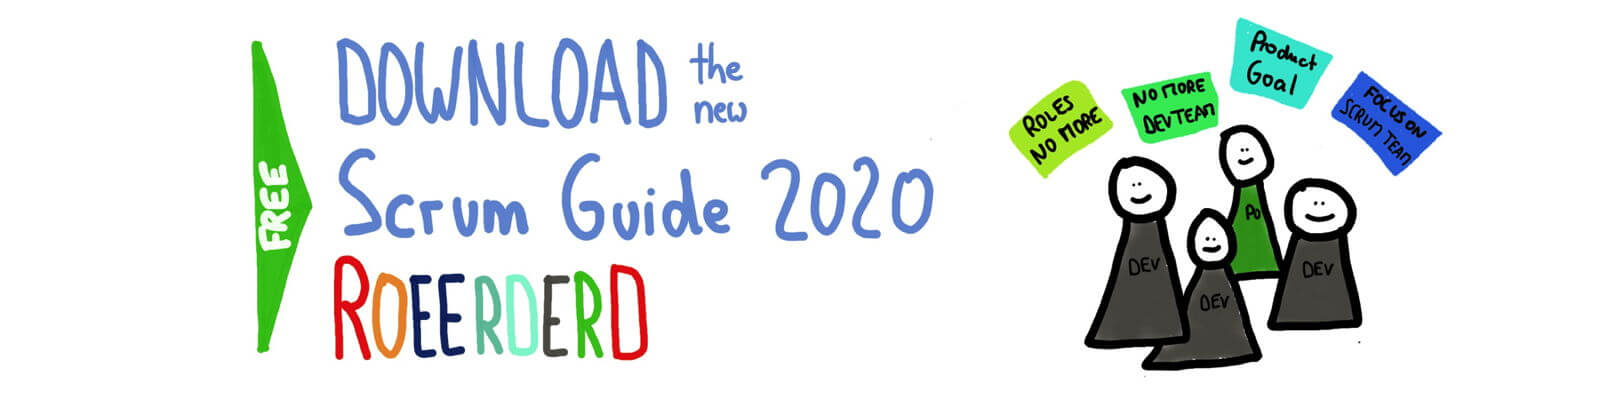 Scrum Guide 2020 — Download the new edition of the Scrum Guide Reordered — Age-of-Product.com